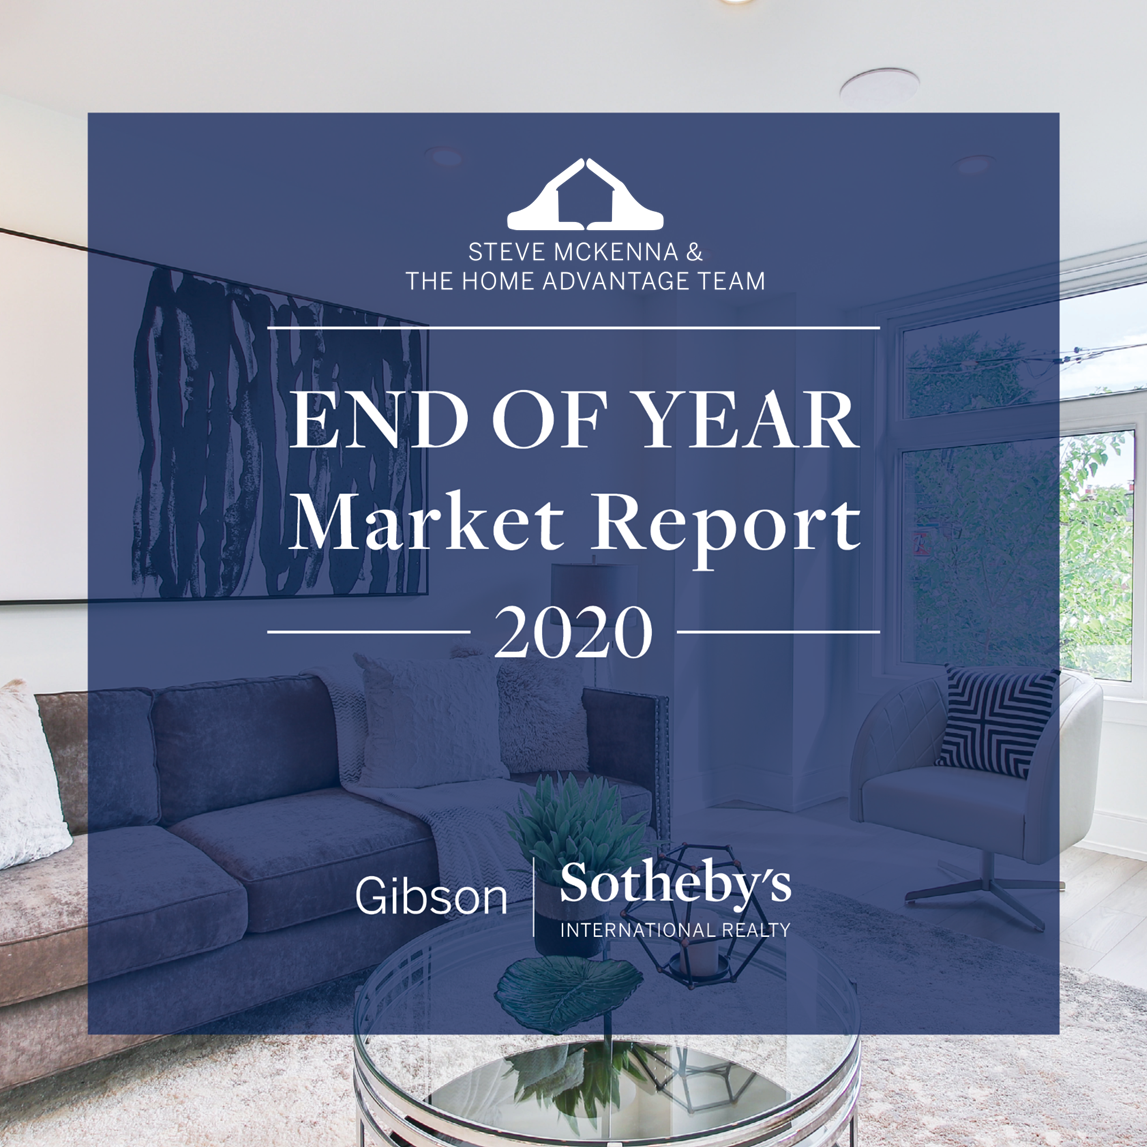 End of Year Market Report, 2020